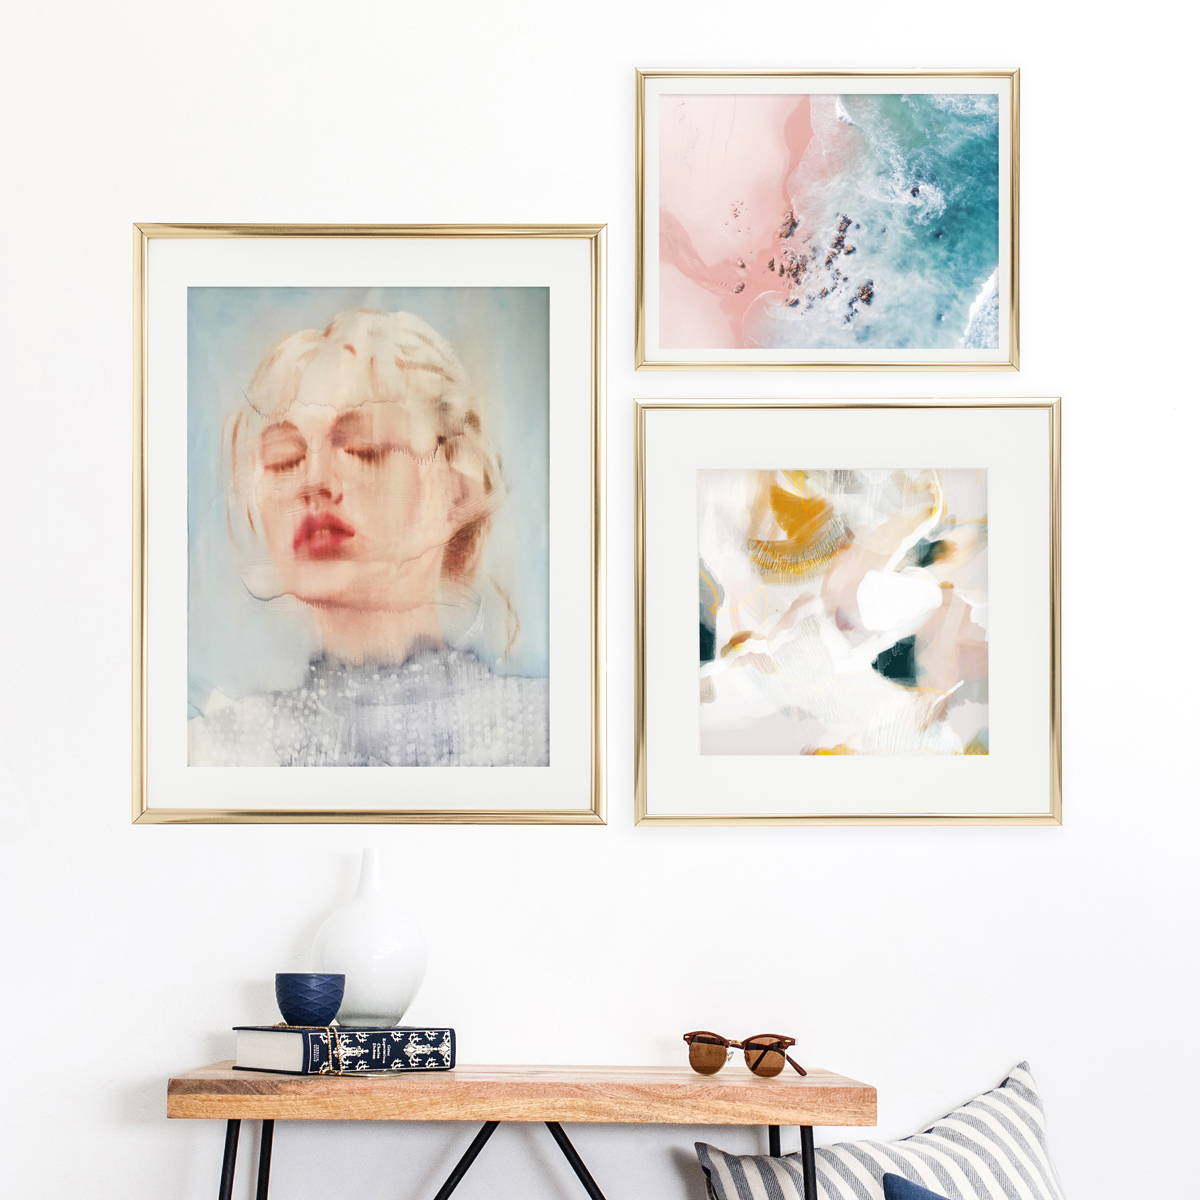 Done for you gallery wall ideas via Parima Studio